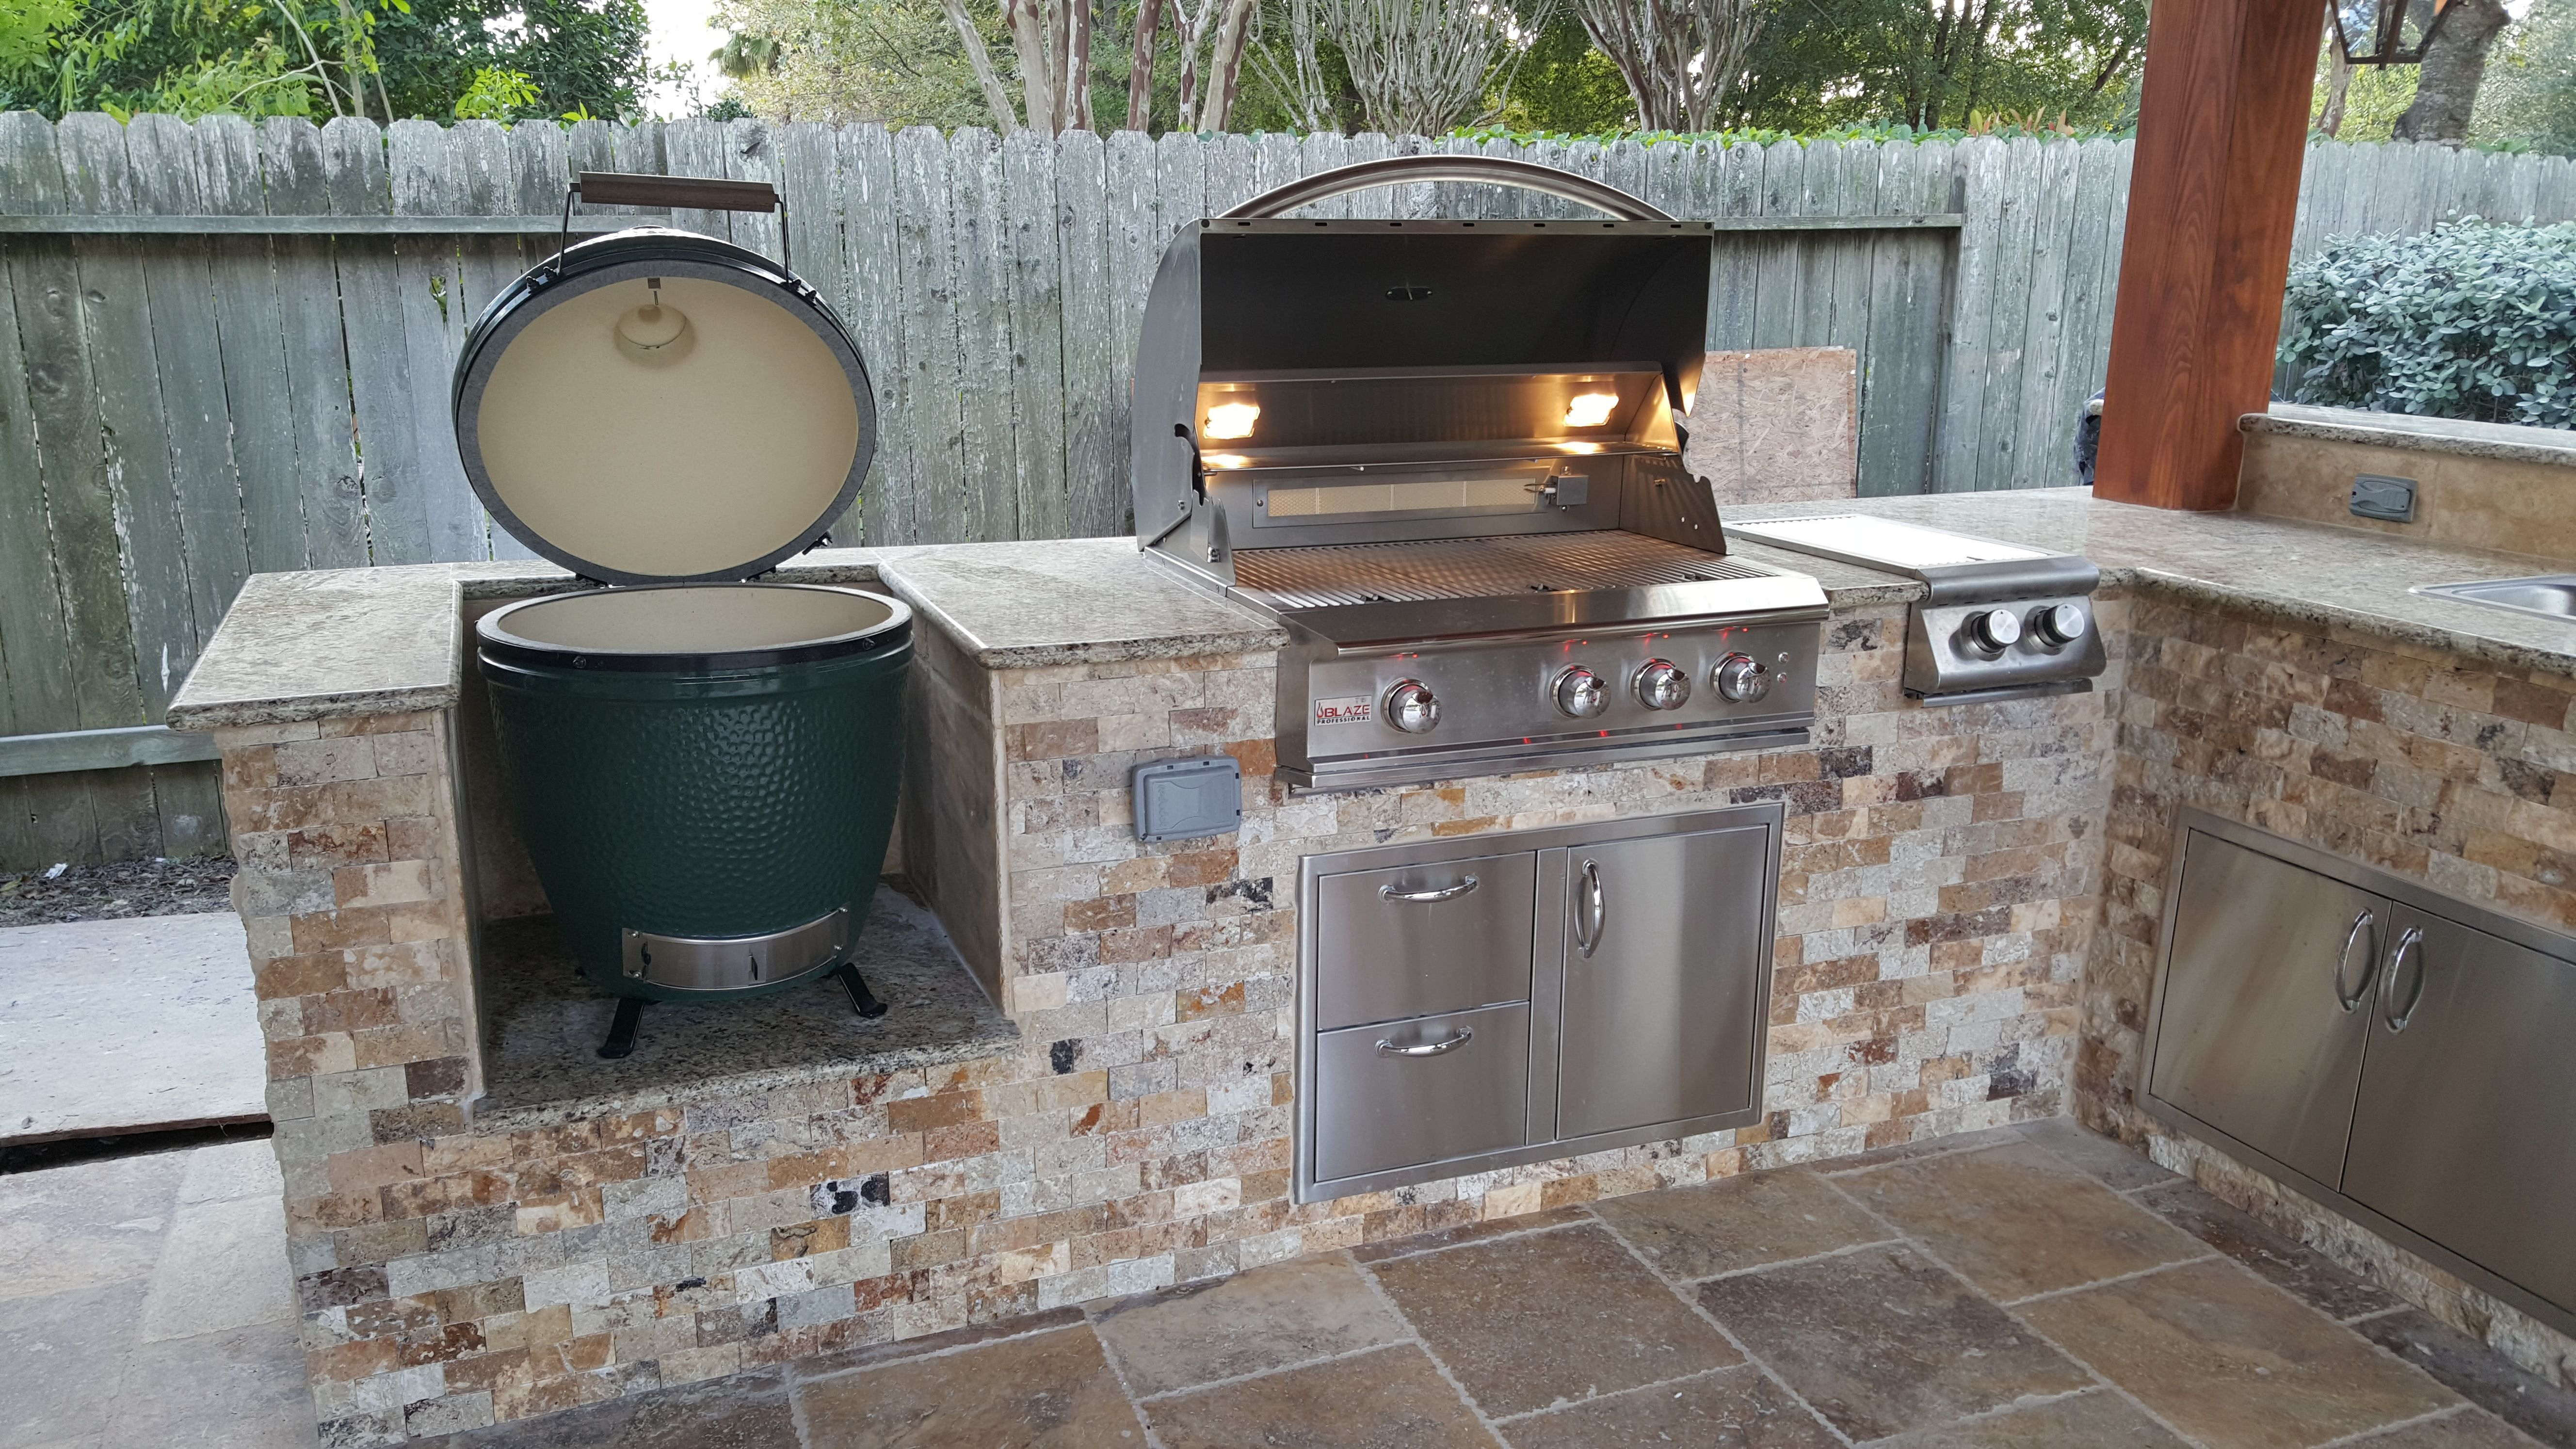 Outdoor Kitchen With Travertine Stone Granite Counter Top Green Egg Grill Side Burner And Drawe Outdoor Kitchen Patio Outdoor Kitchen Design Outdoor Grill